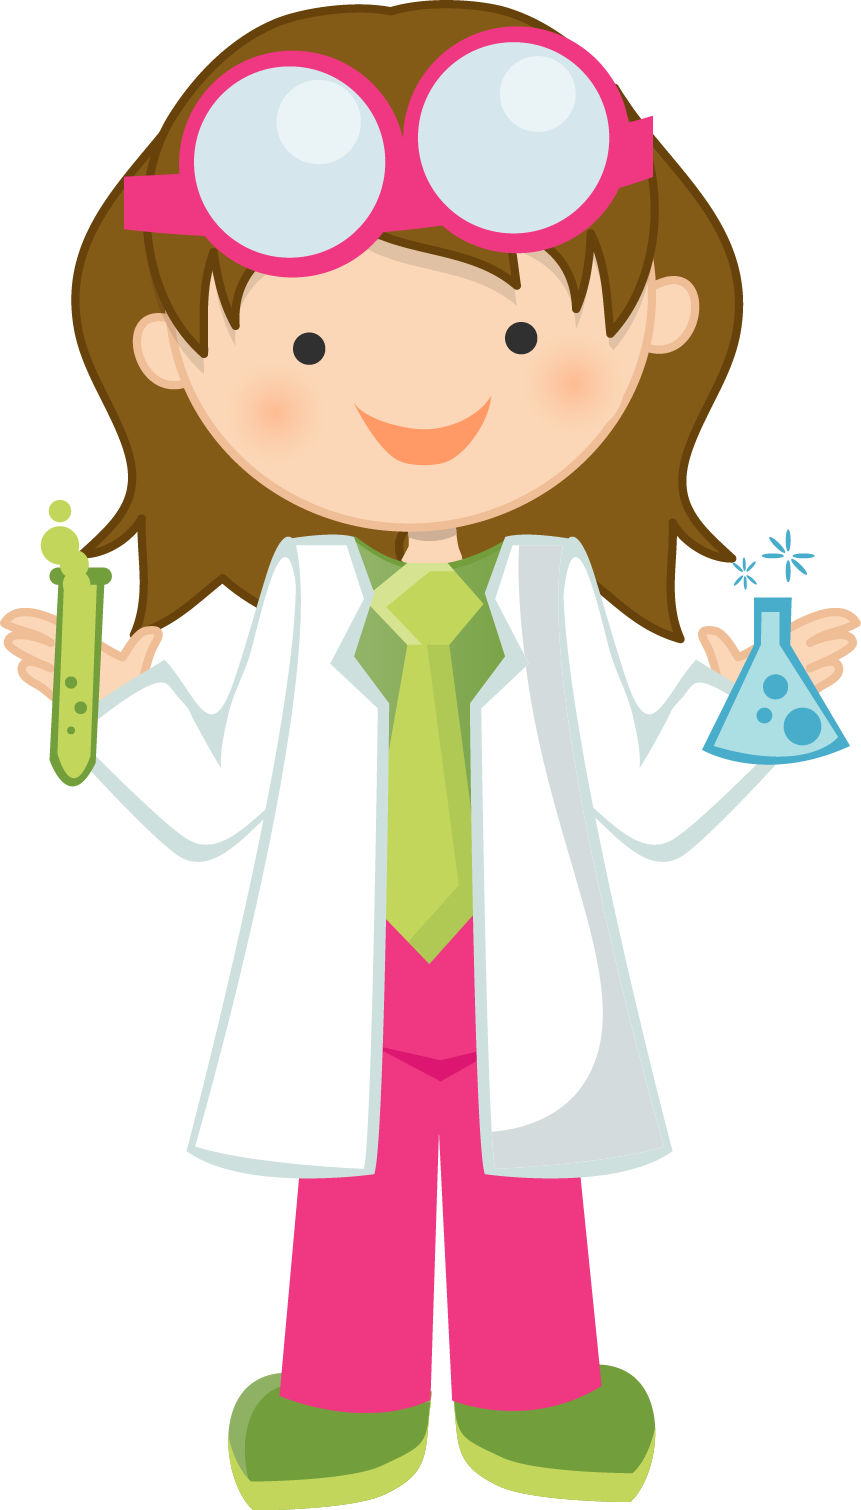 Scientist clipart. Girl free science fun